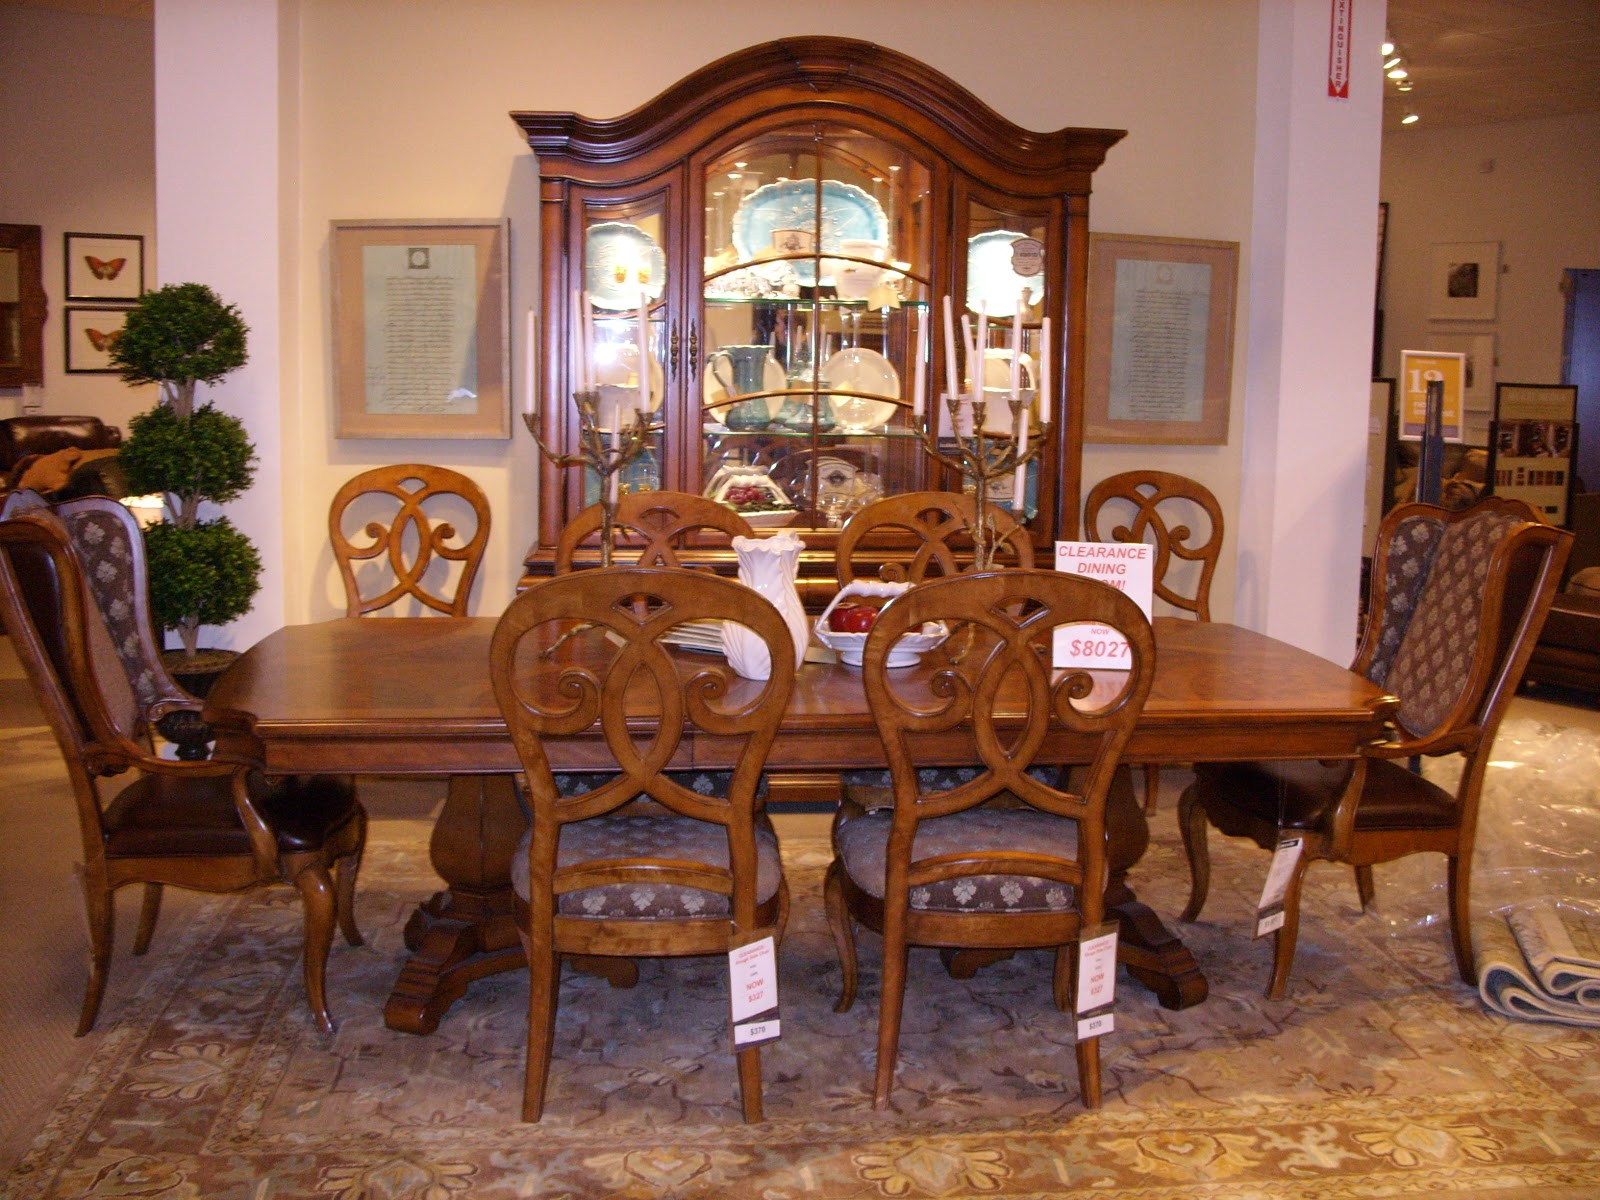 discontinued dining room chairs chair covers hire shropshire thomasville furniture bed